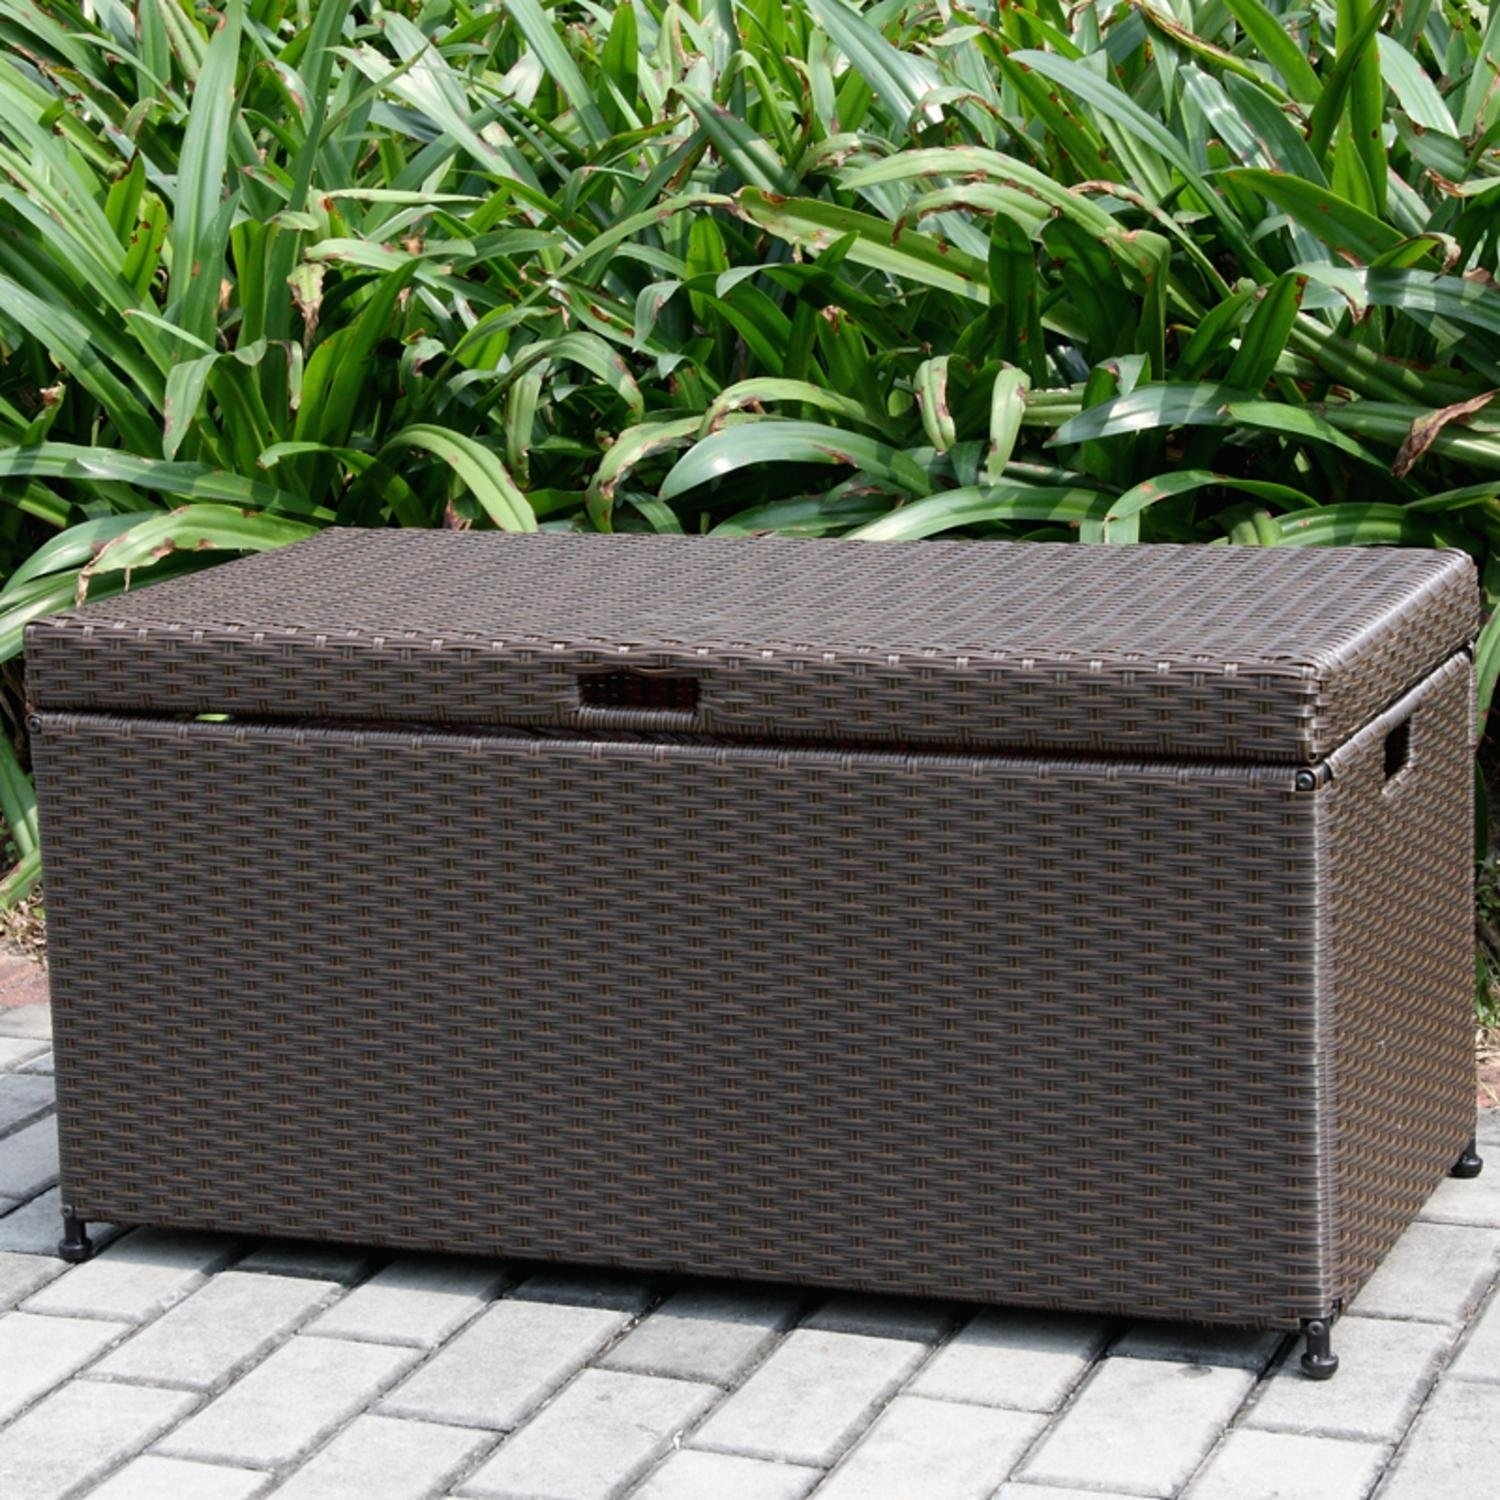 Patio Furniture Cushion Storage Boxes Ideas On Foter